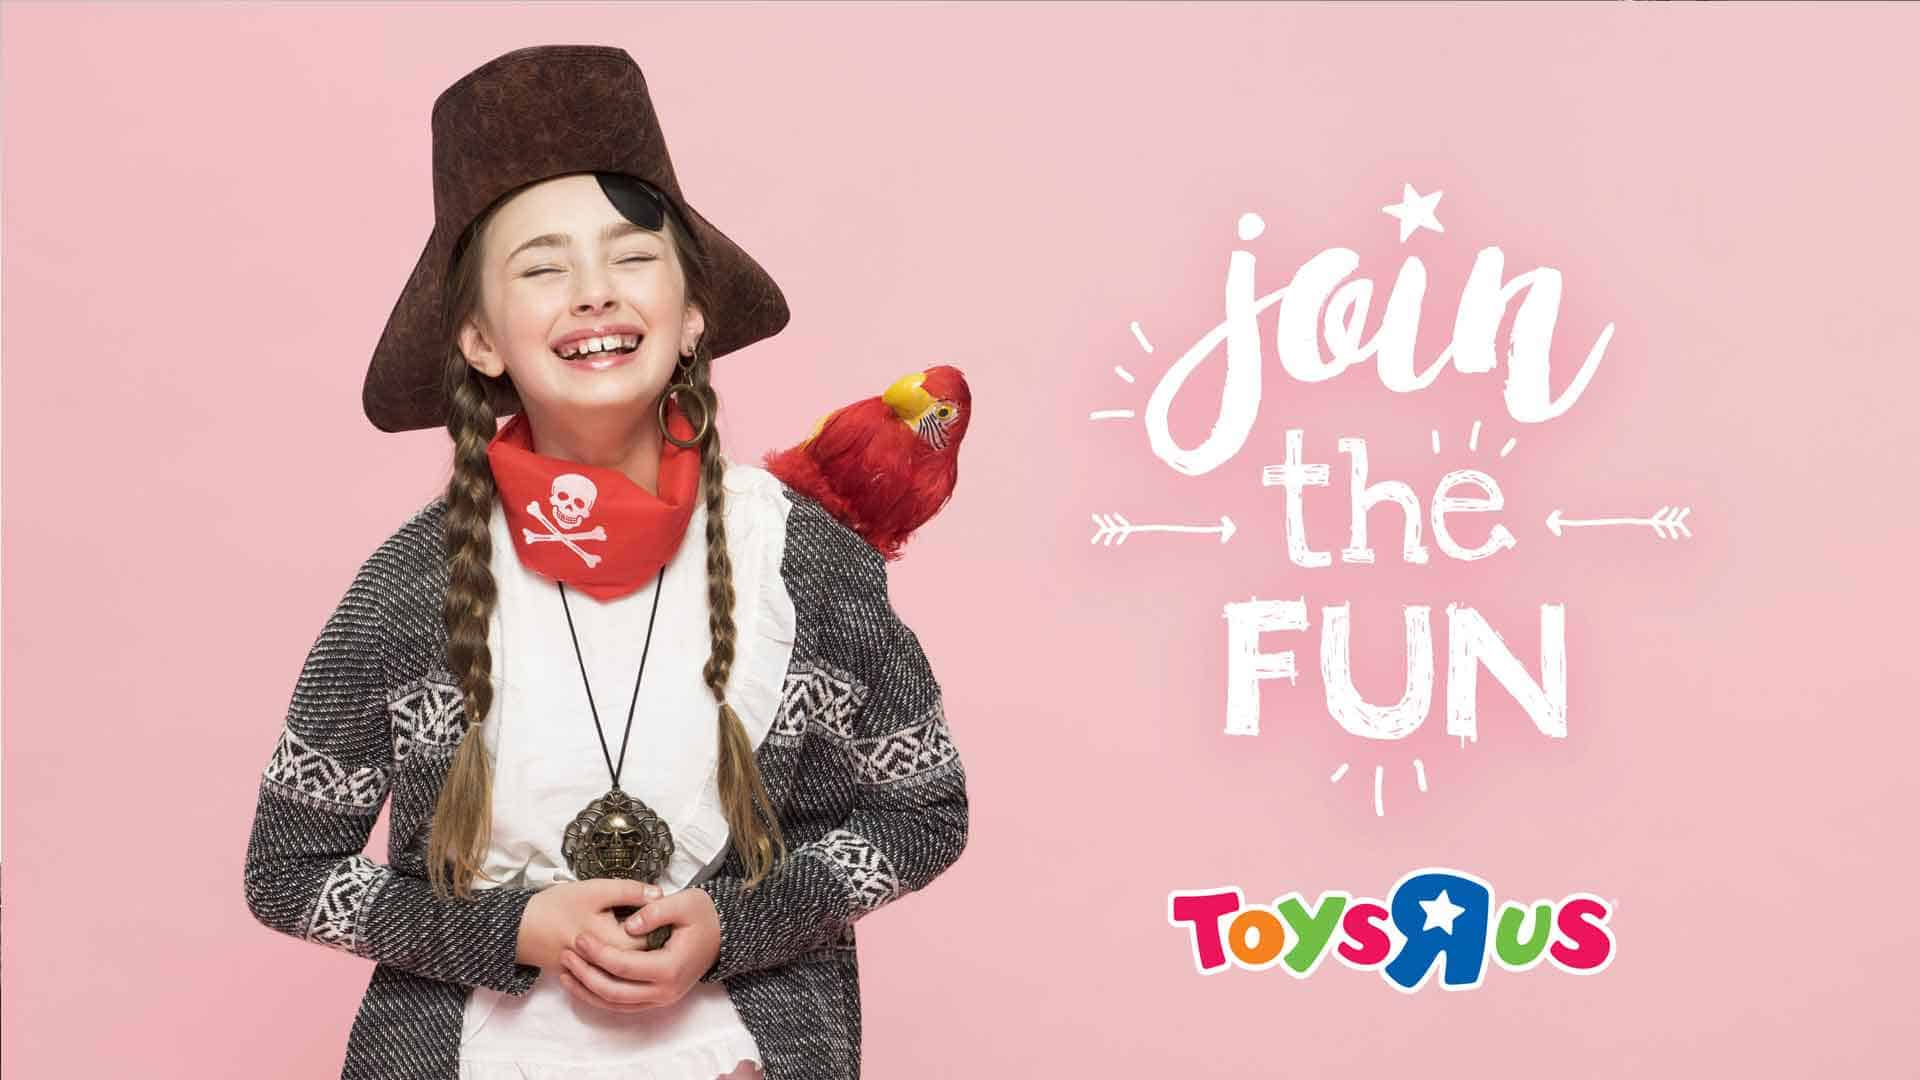 Toys R Us Branded Video Content Production Sydney & Newcastle NSW